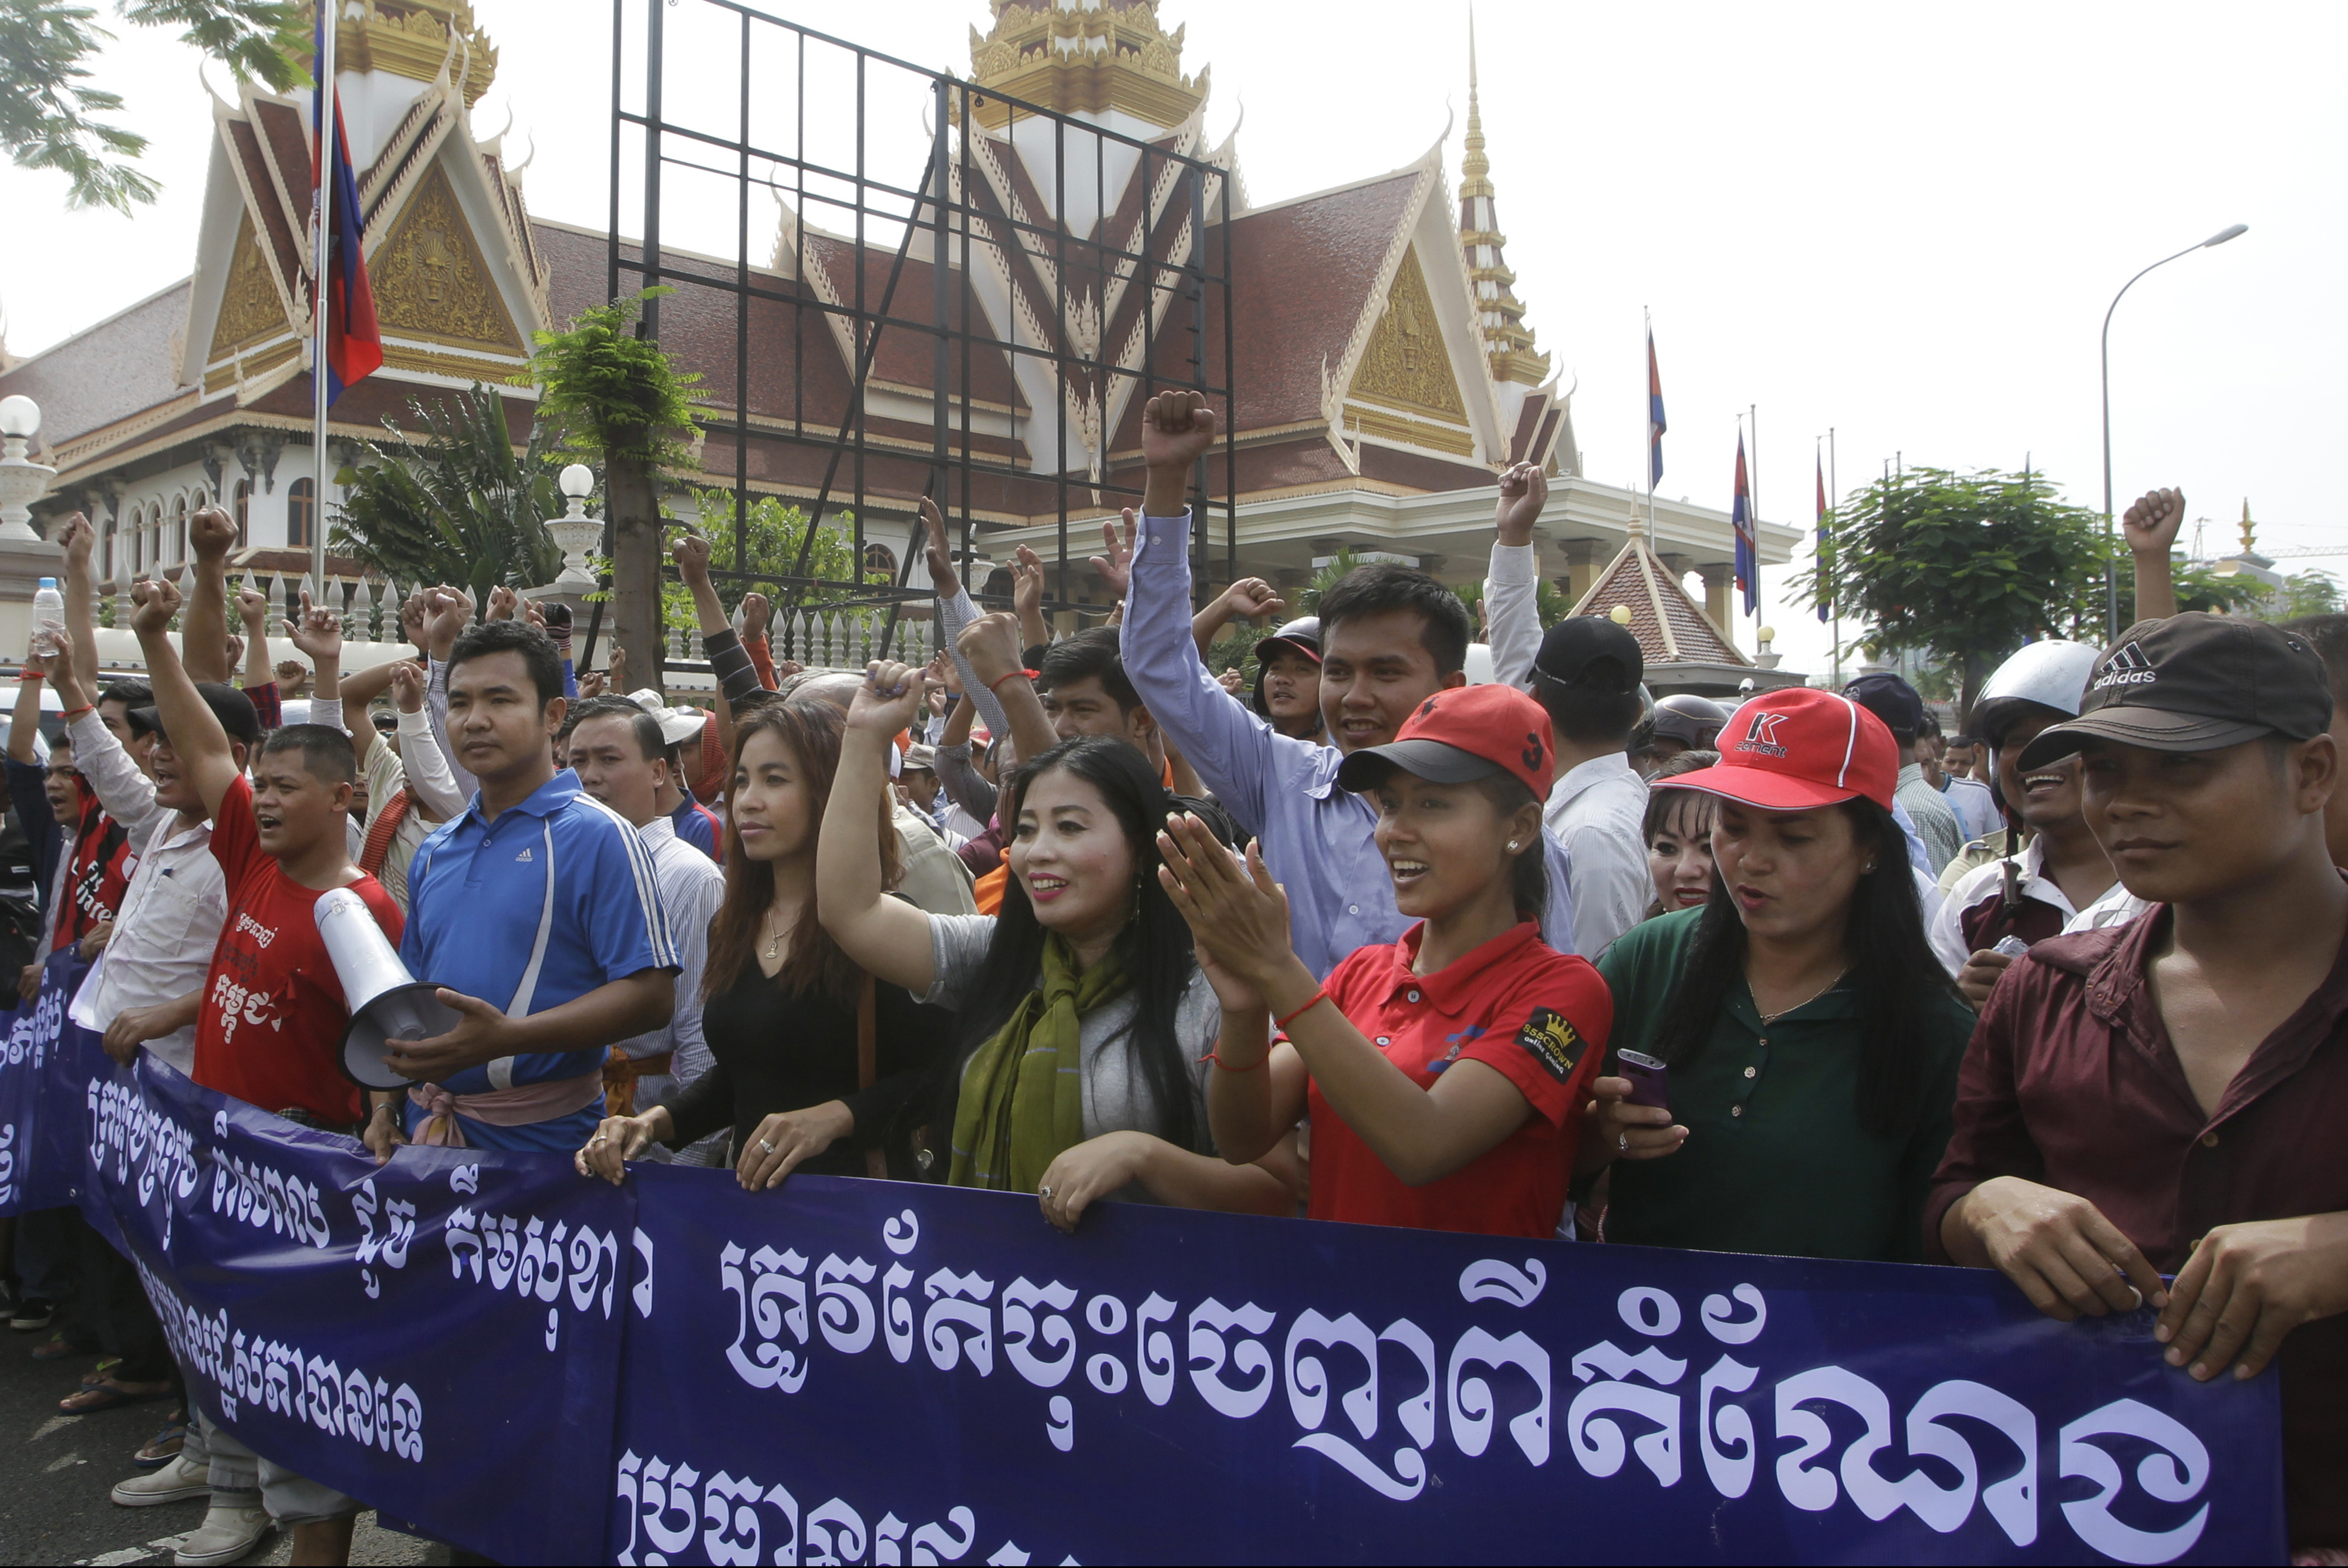 Pro-ruling party demonstrators stage a protest rally in front of National Assembly in Phnom Penh, Cambodia, Oct. 26, 2015, the same day two members of Cambodia's opposition party were beaten in front of the building with police looking on.